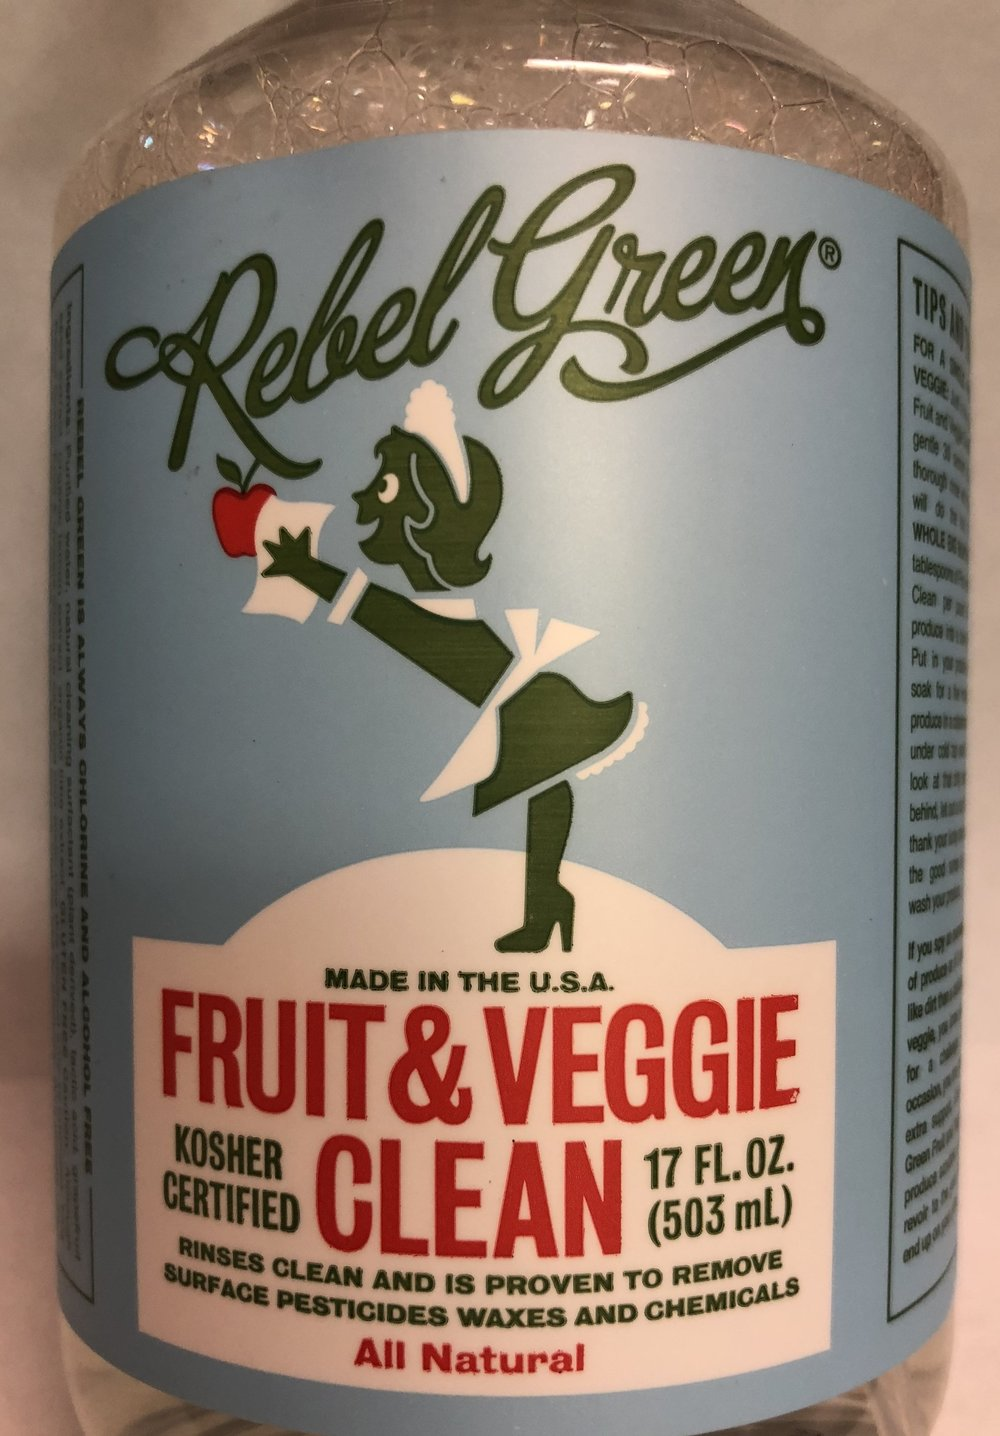 Rebel Green Veggie Clean